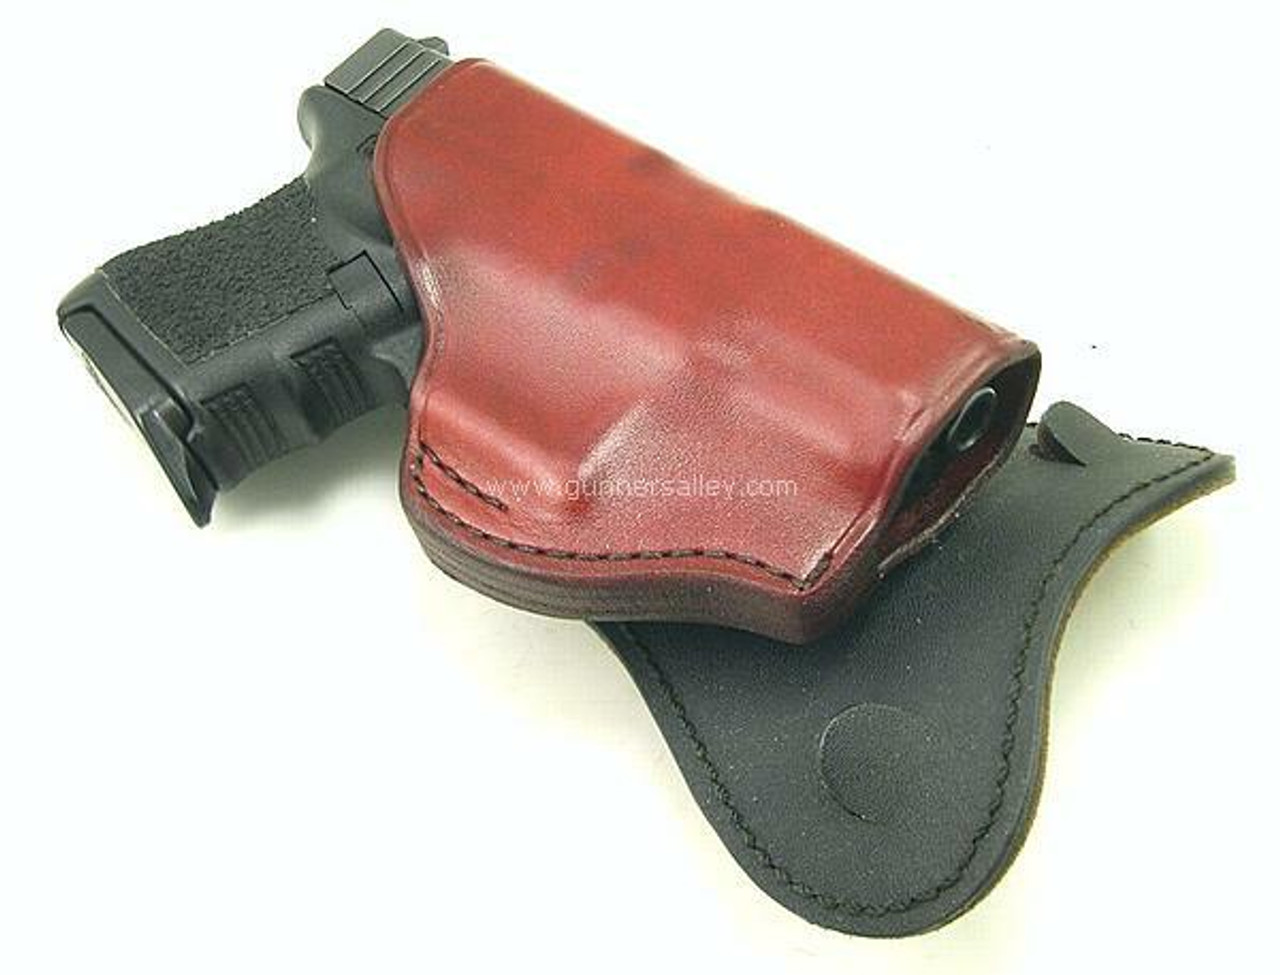 Saddle Brown - Profile View - Shown with a Glock 19 for Demonstration Purposes